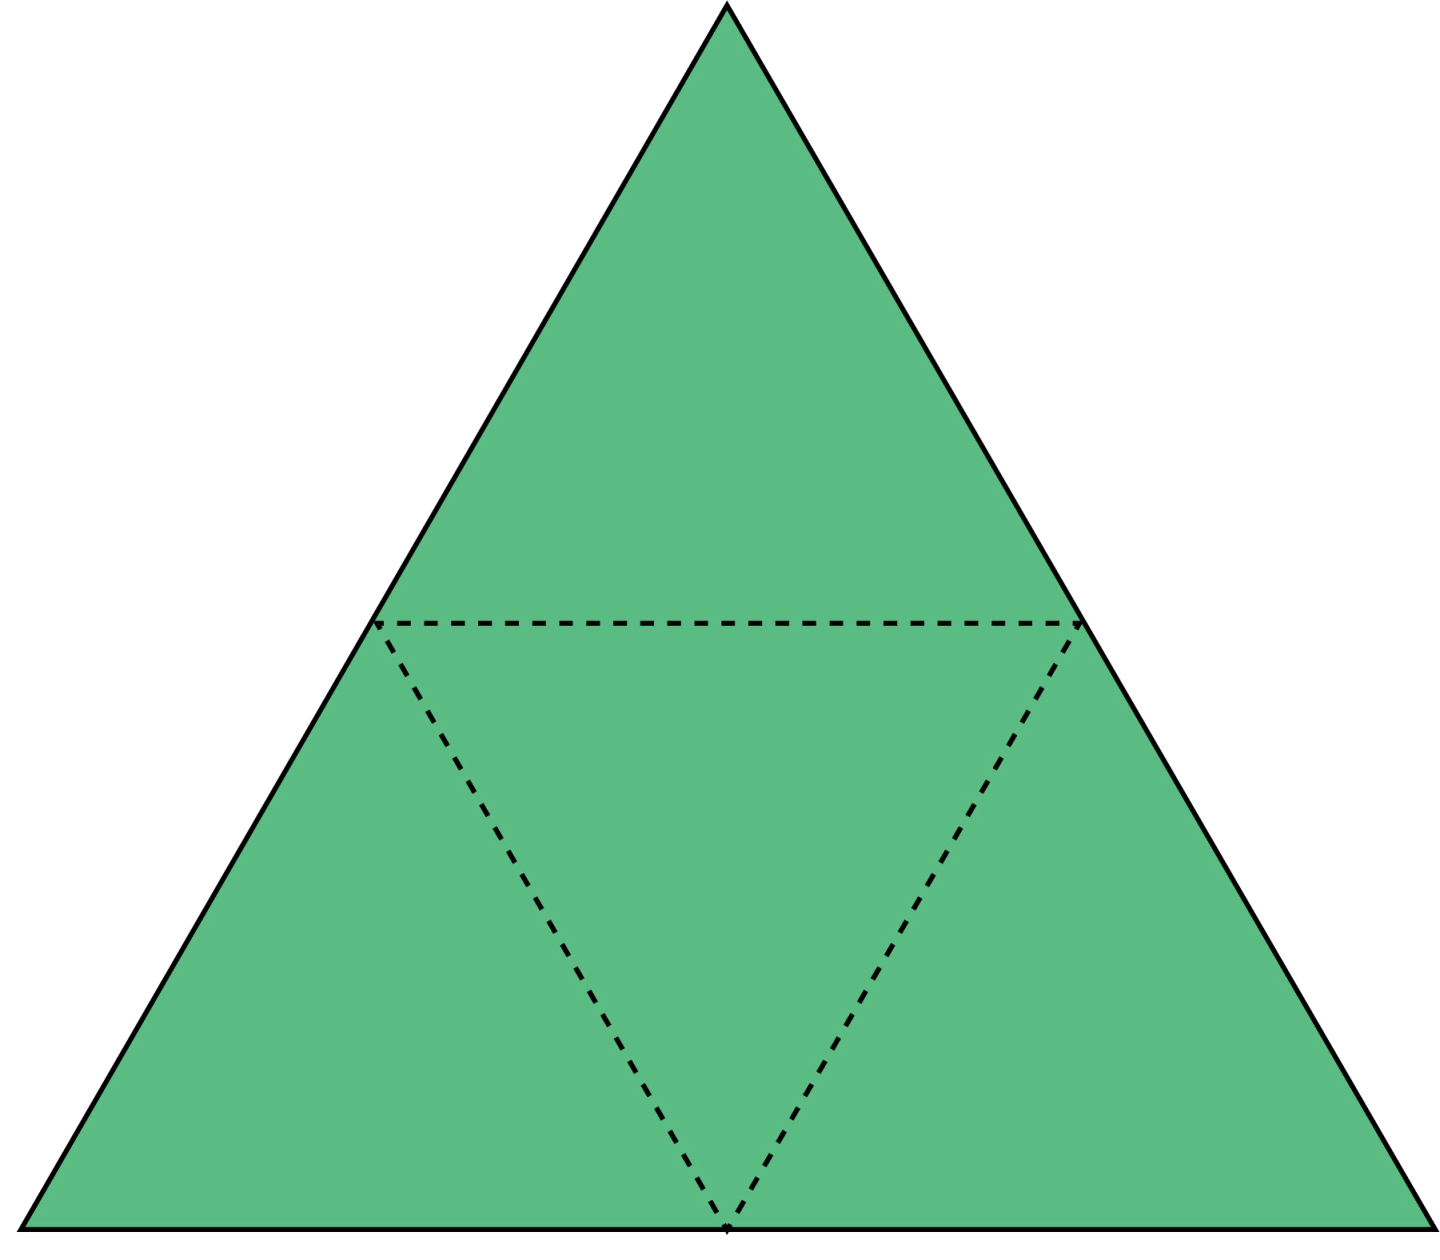 Transparent pyramid base. Triangular based facts for